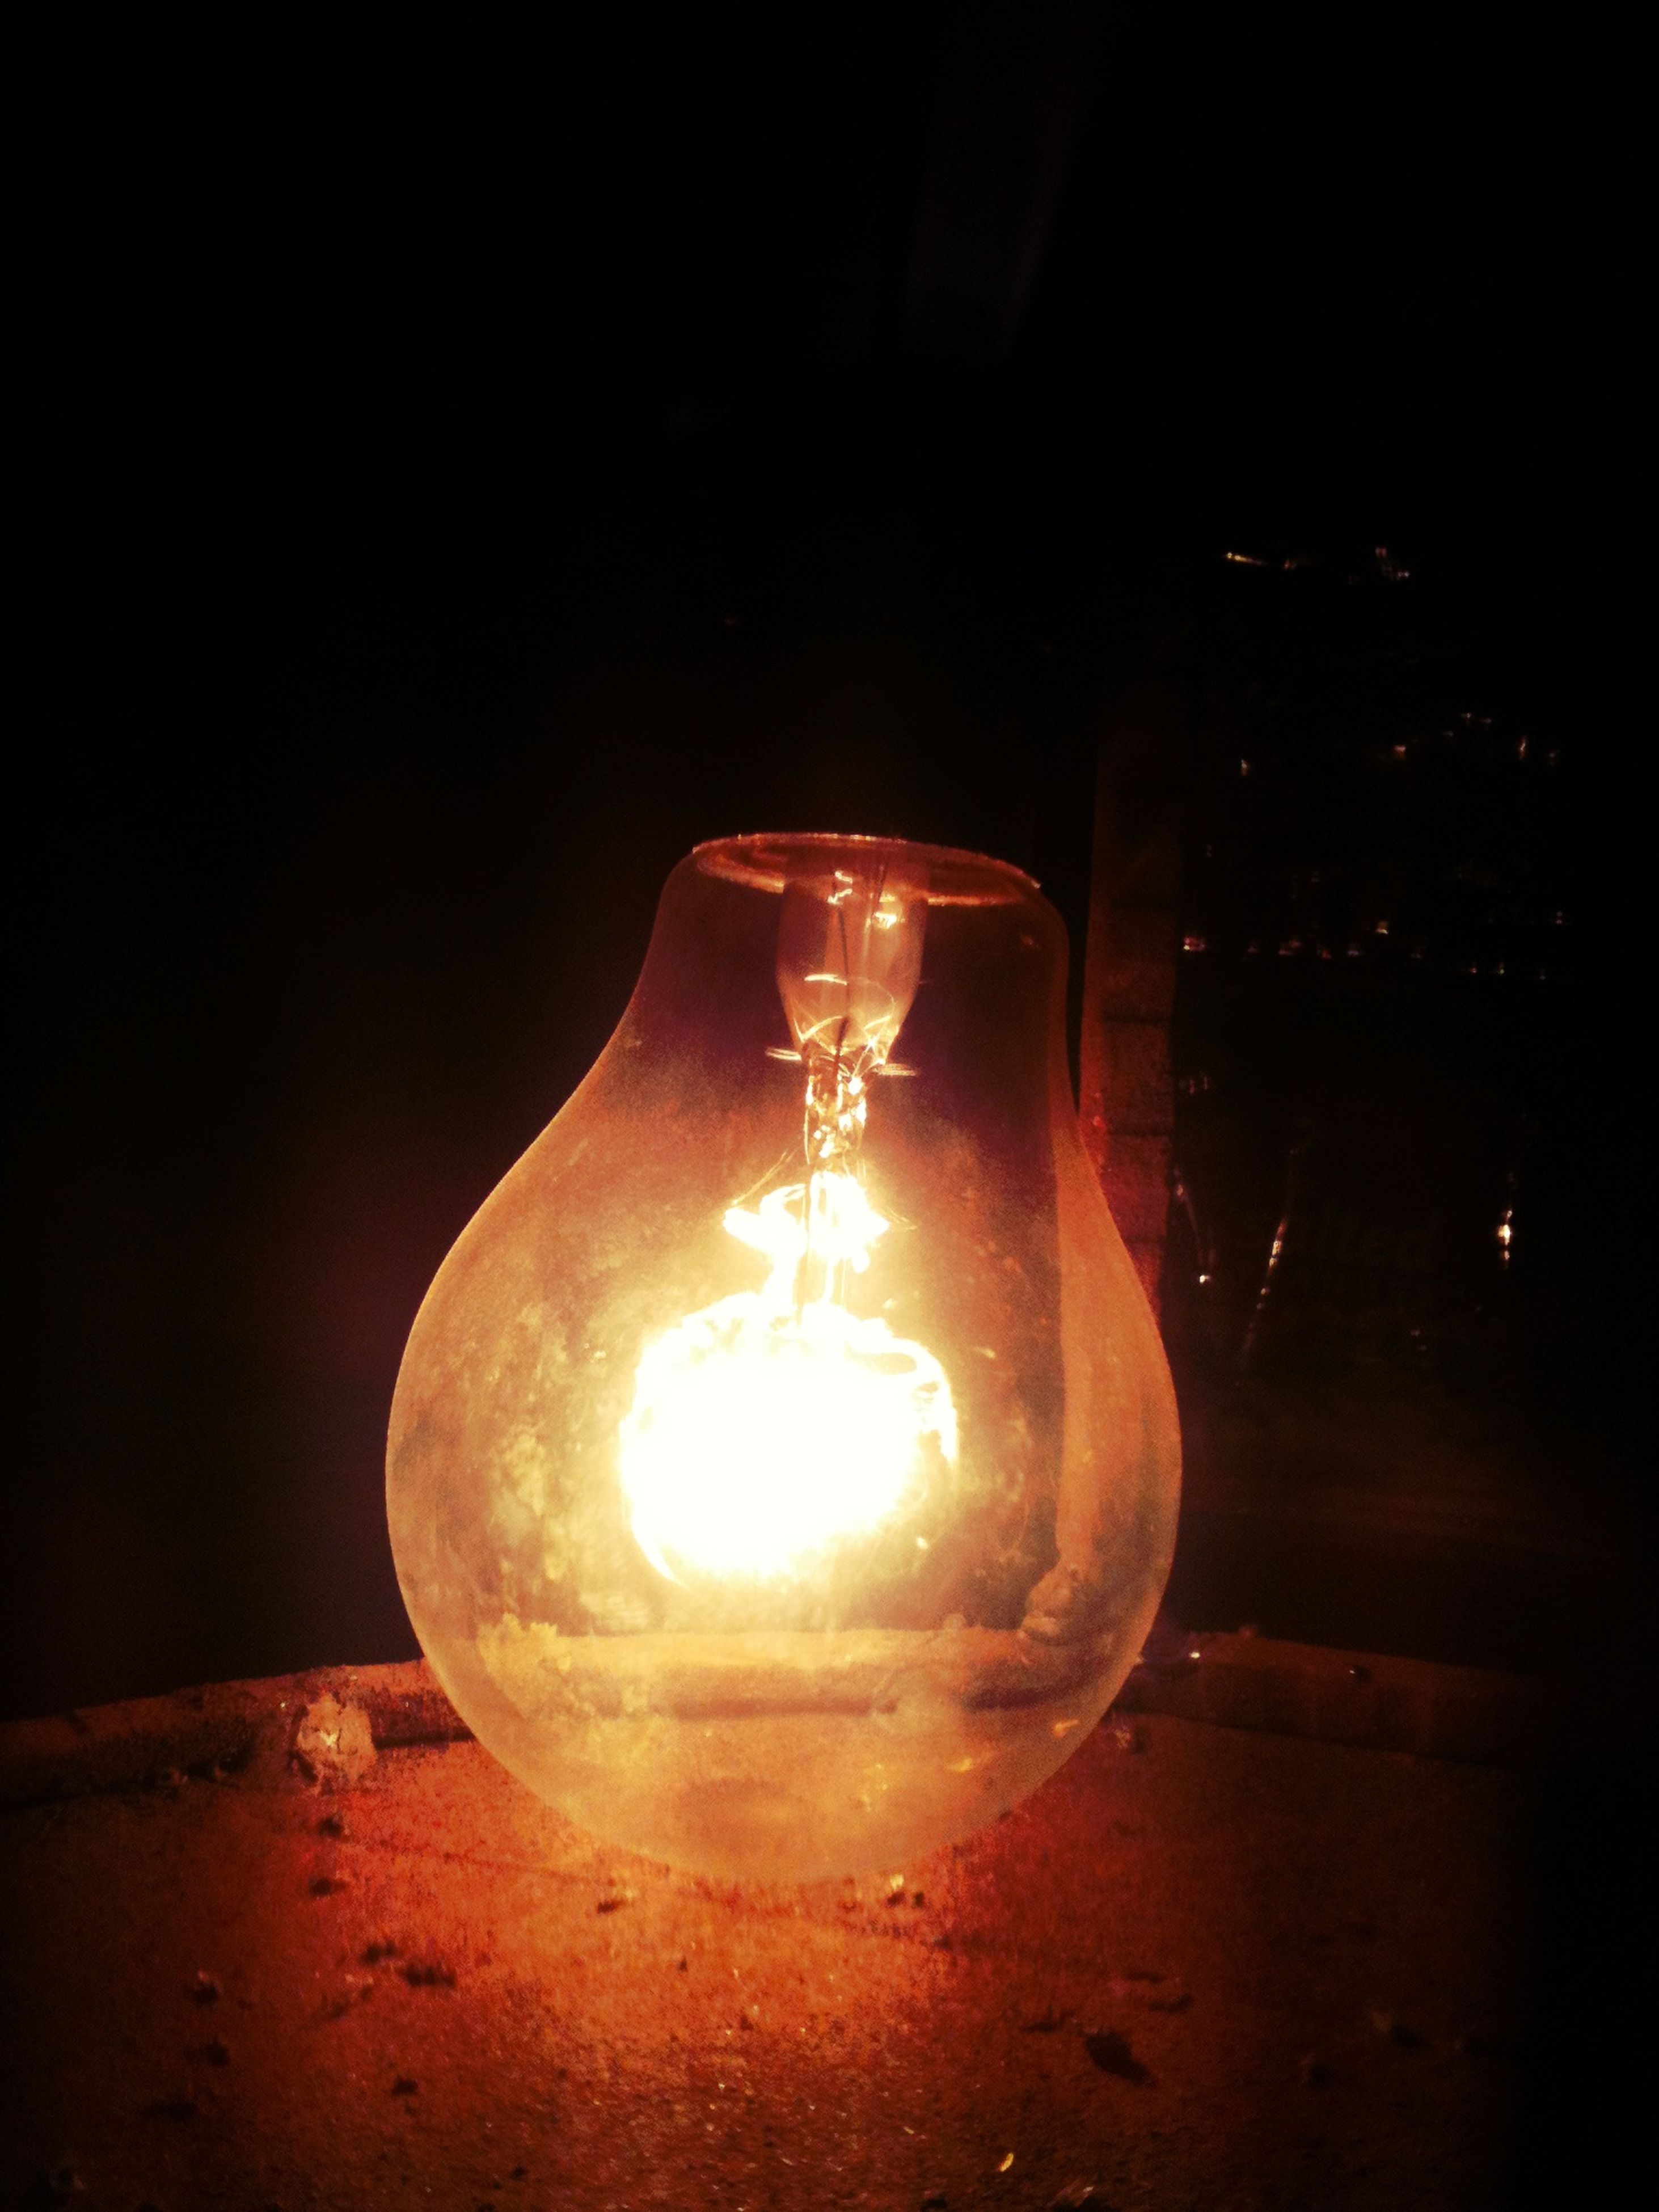 burning, flame, illuminated, fire - natural phenomenon, heat - temperature, glowing, indoors, night, lit, candle, dark, close-up, fire, copy space, lighting equipment, darkroom, candlelight, light - natural phenomenon, light bulb, glass - material